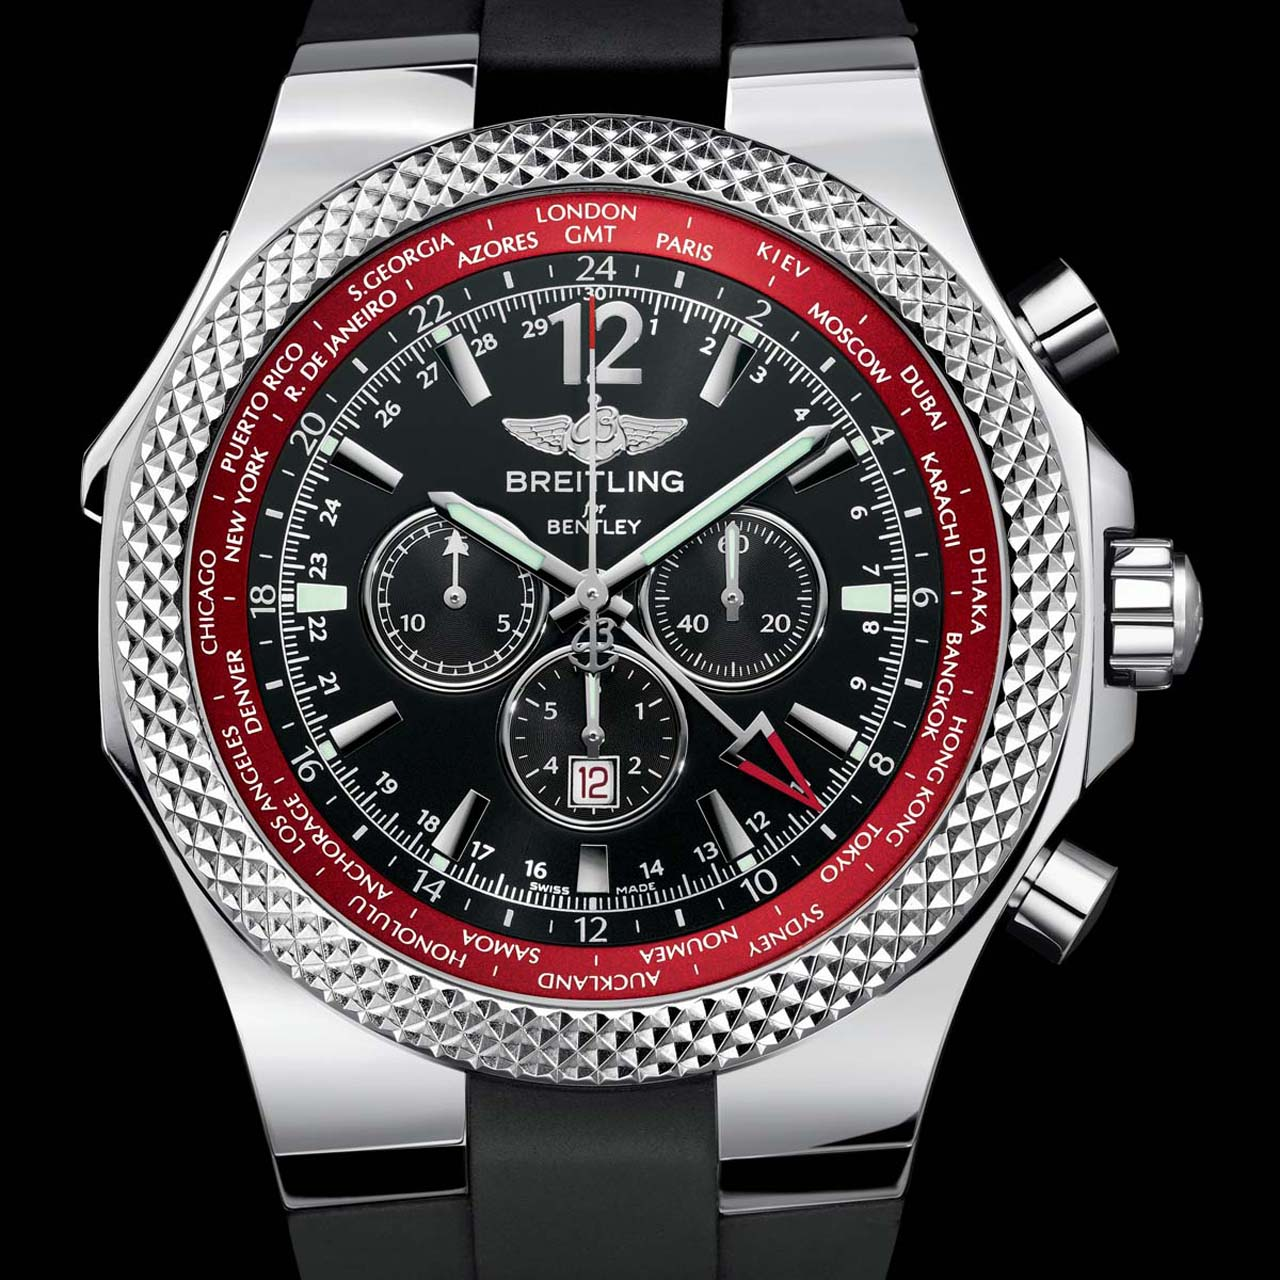 Breitling Celebrates New Continental GT With GMT V8